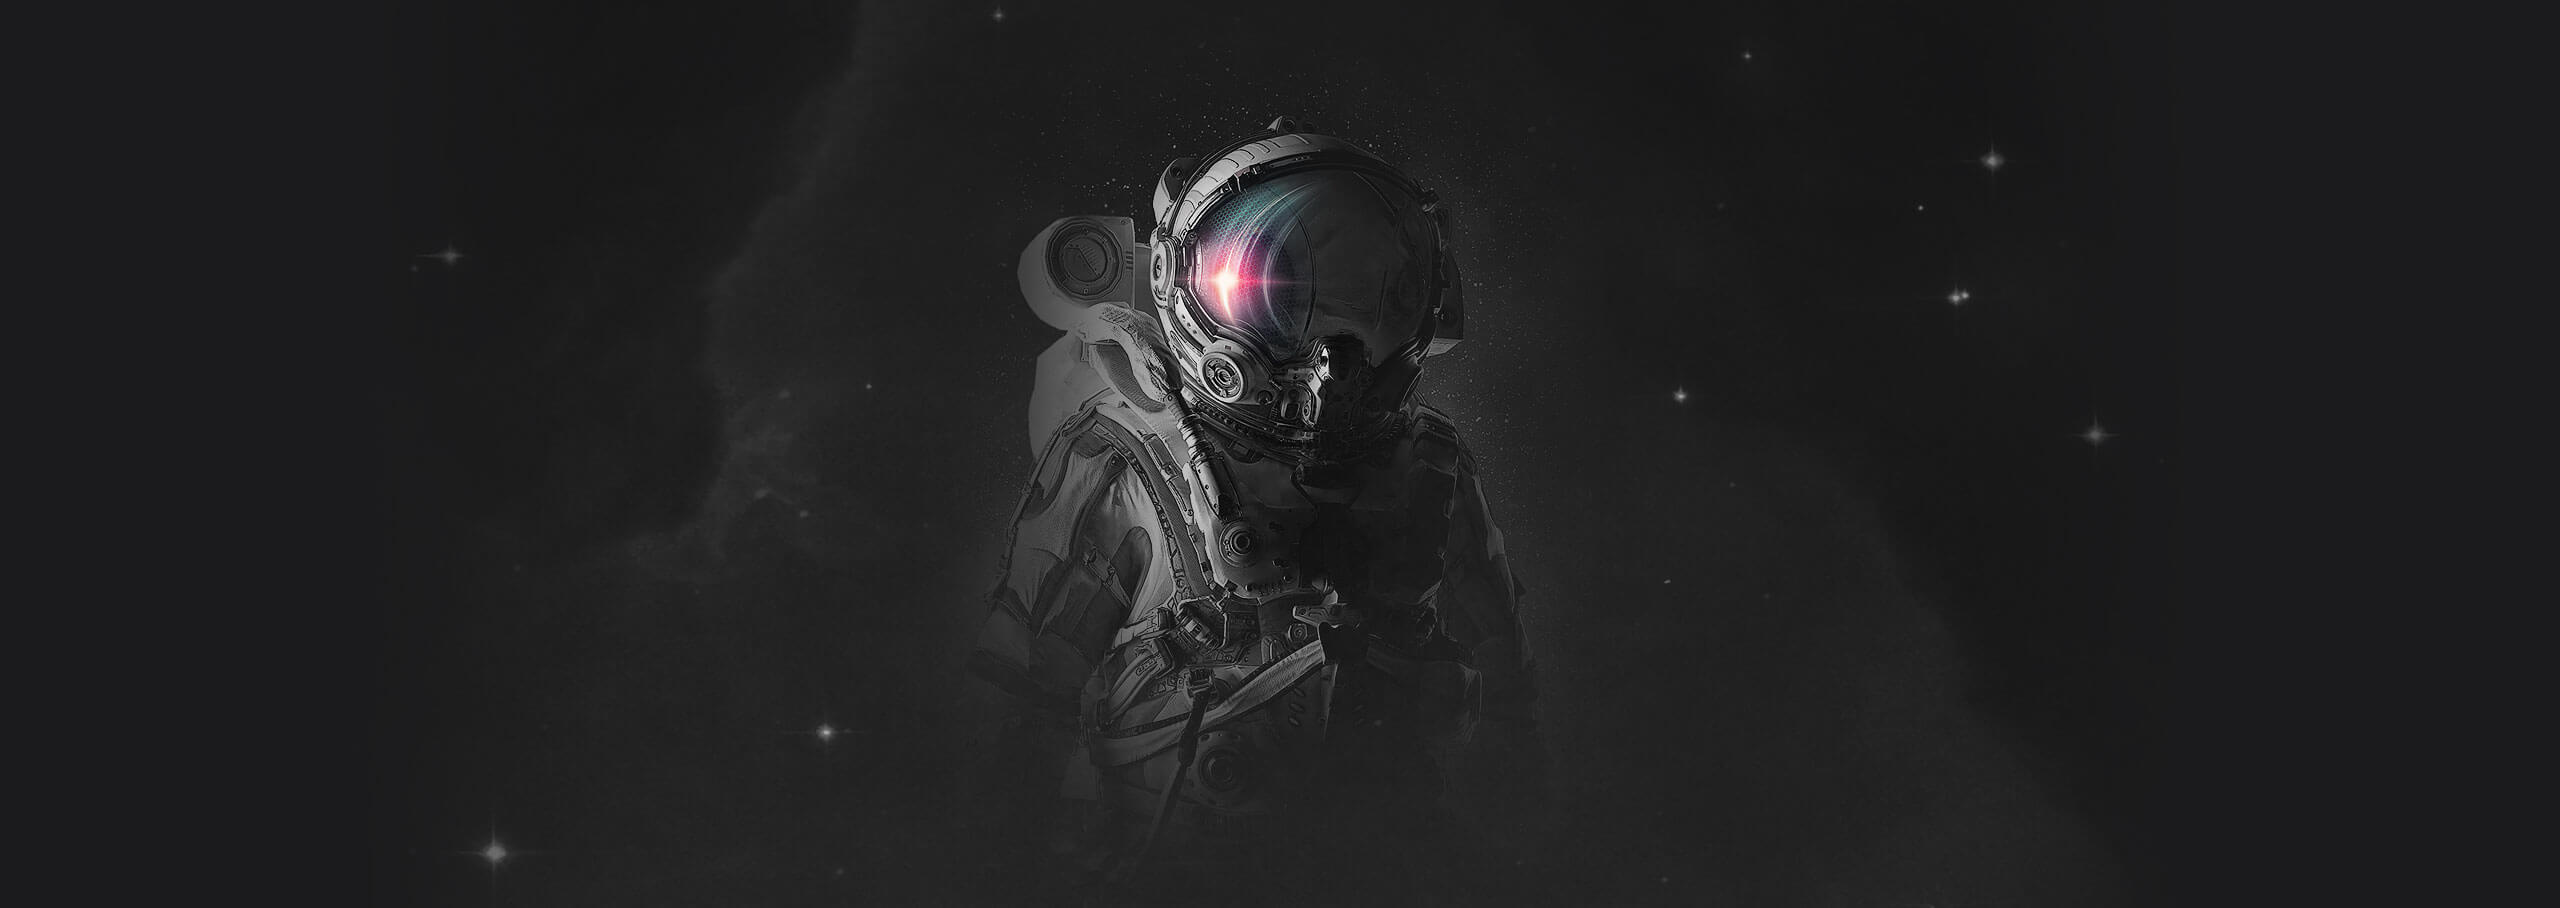 banner-Space-exploration